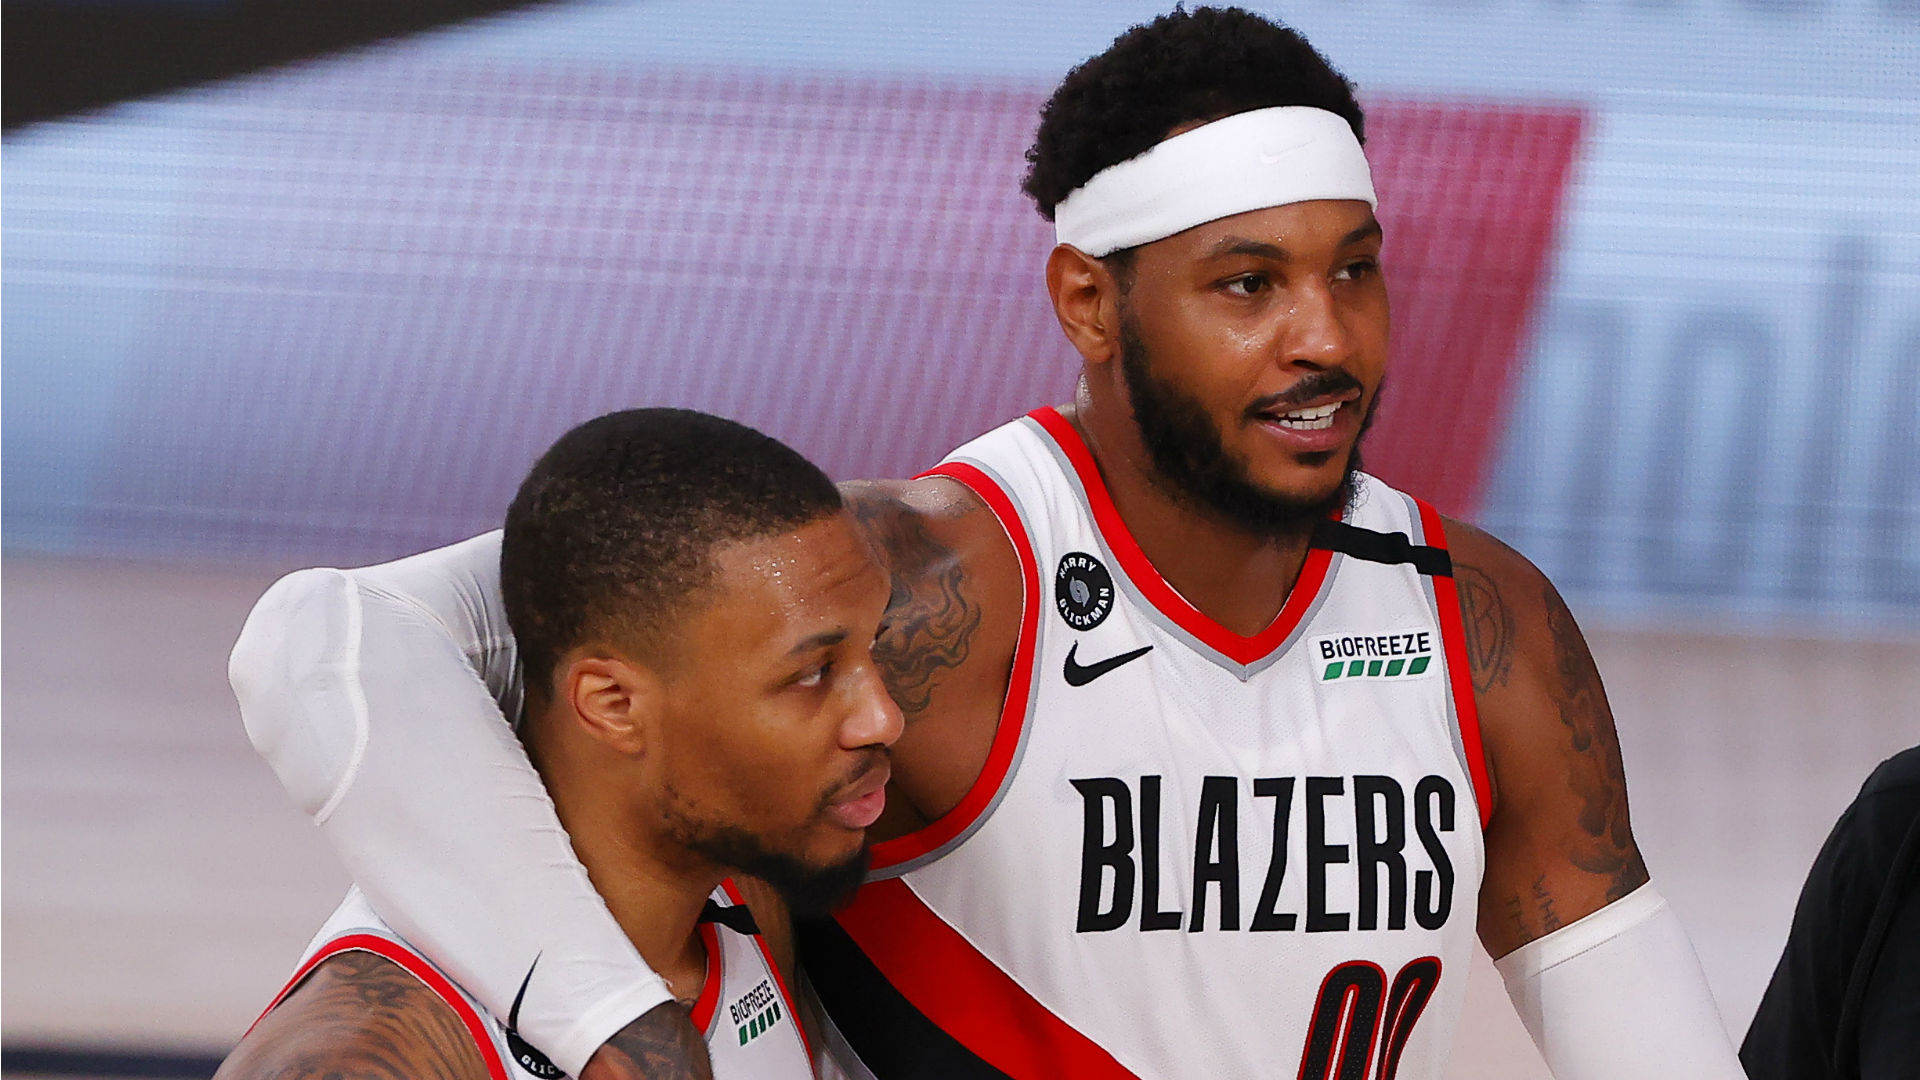 'Frustrated' Damian Lillard moves on from George-Beverley spat with 51-point game